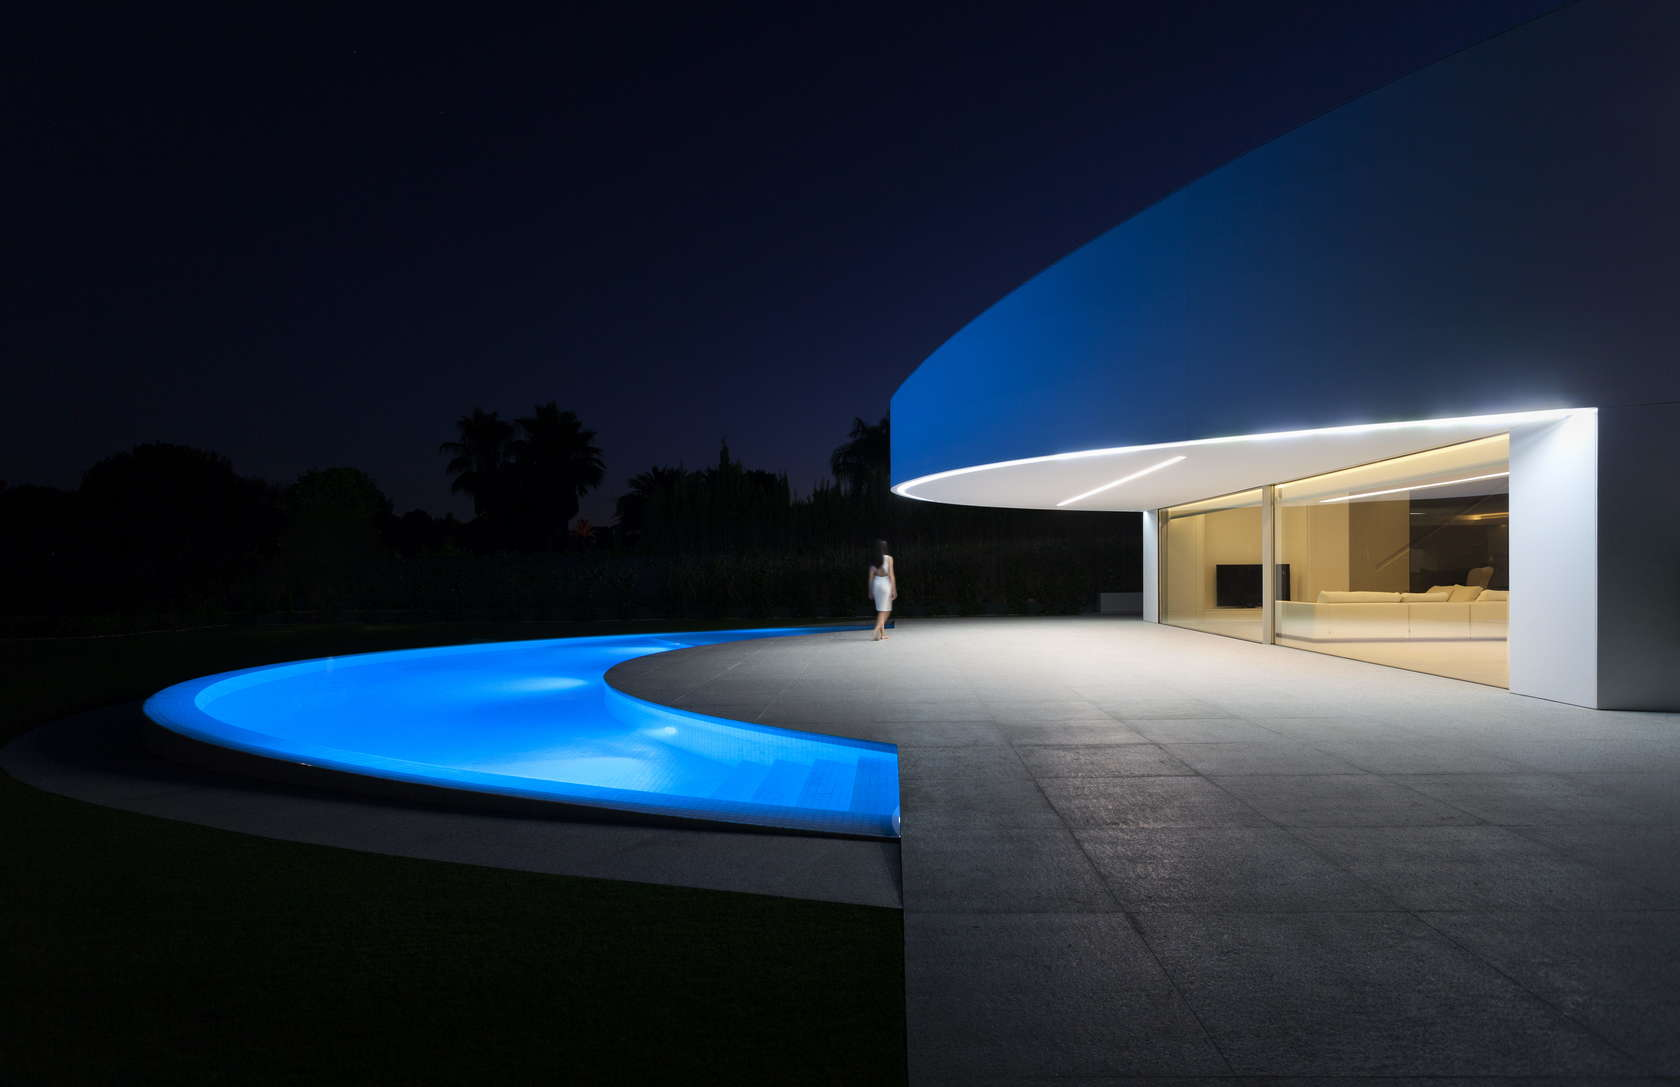 Semi Circle Pool - Golf course views and a striking exterior make for a modern marvel